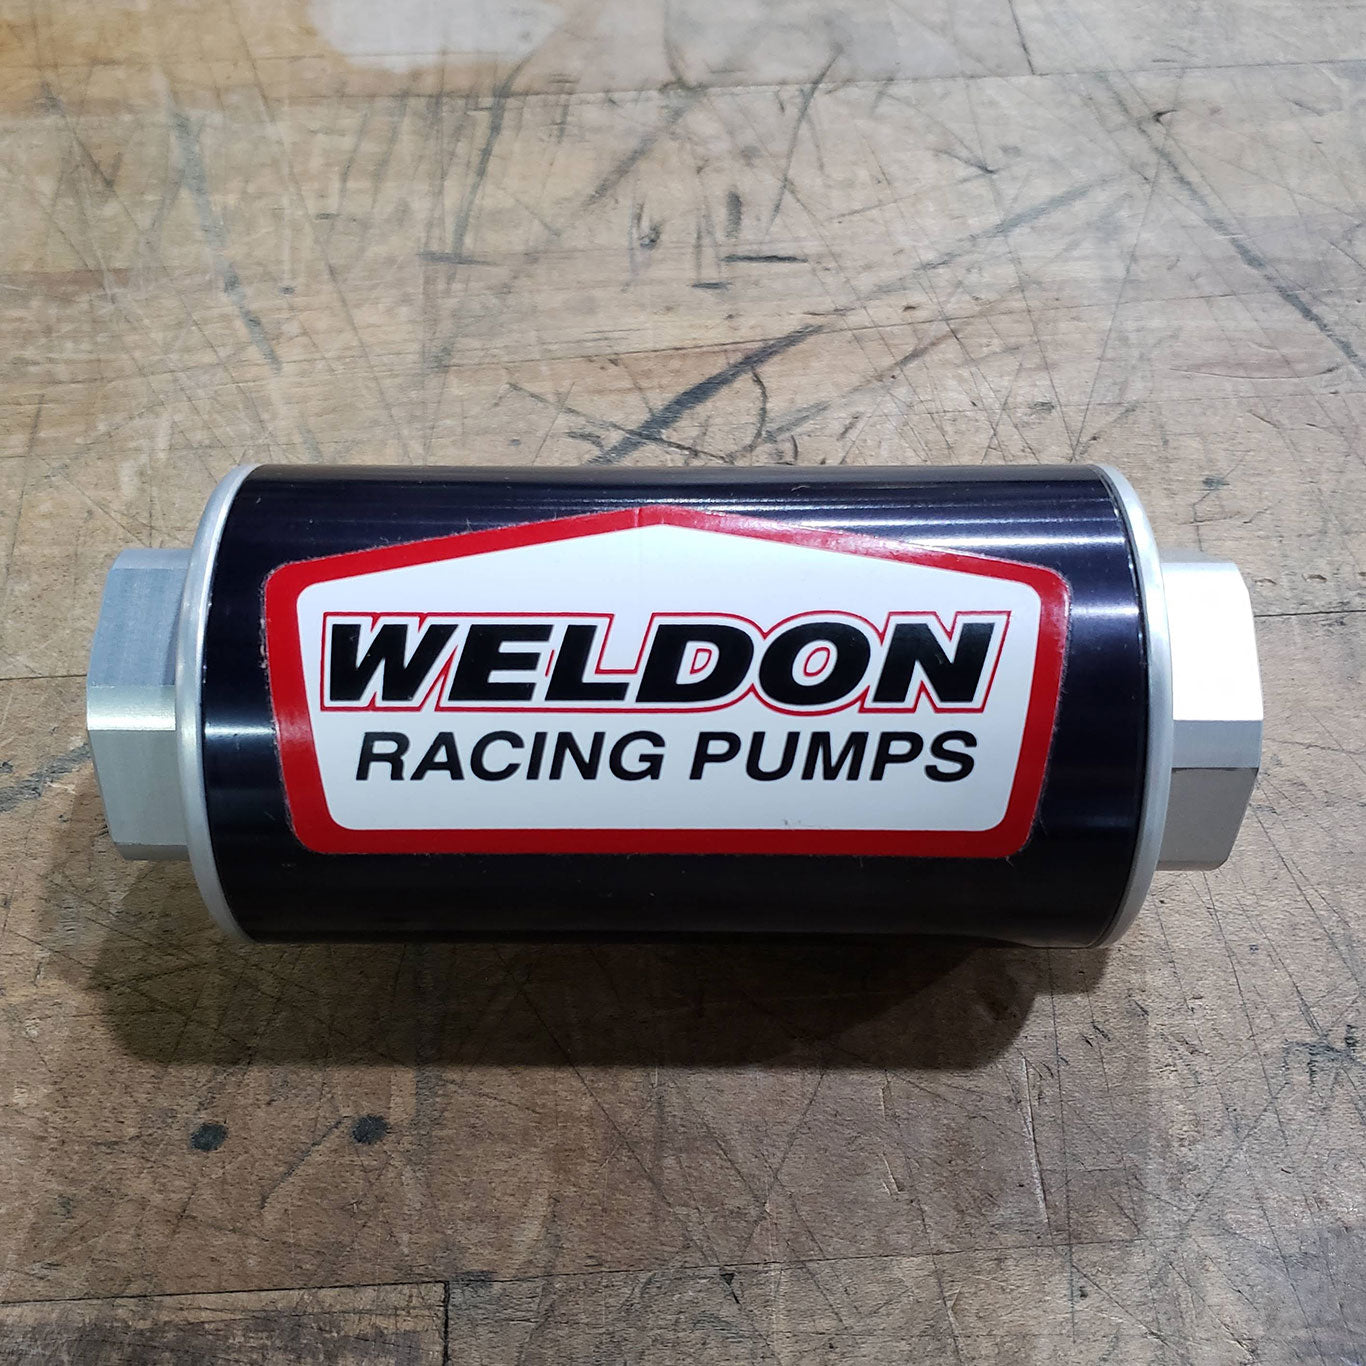 Fuel System Deals Pro Line Racing Text Flow Filter New Open Box Weldon Billet 12an With 100 Micron Stainless Steel Element